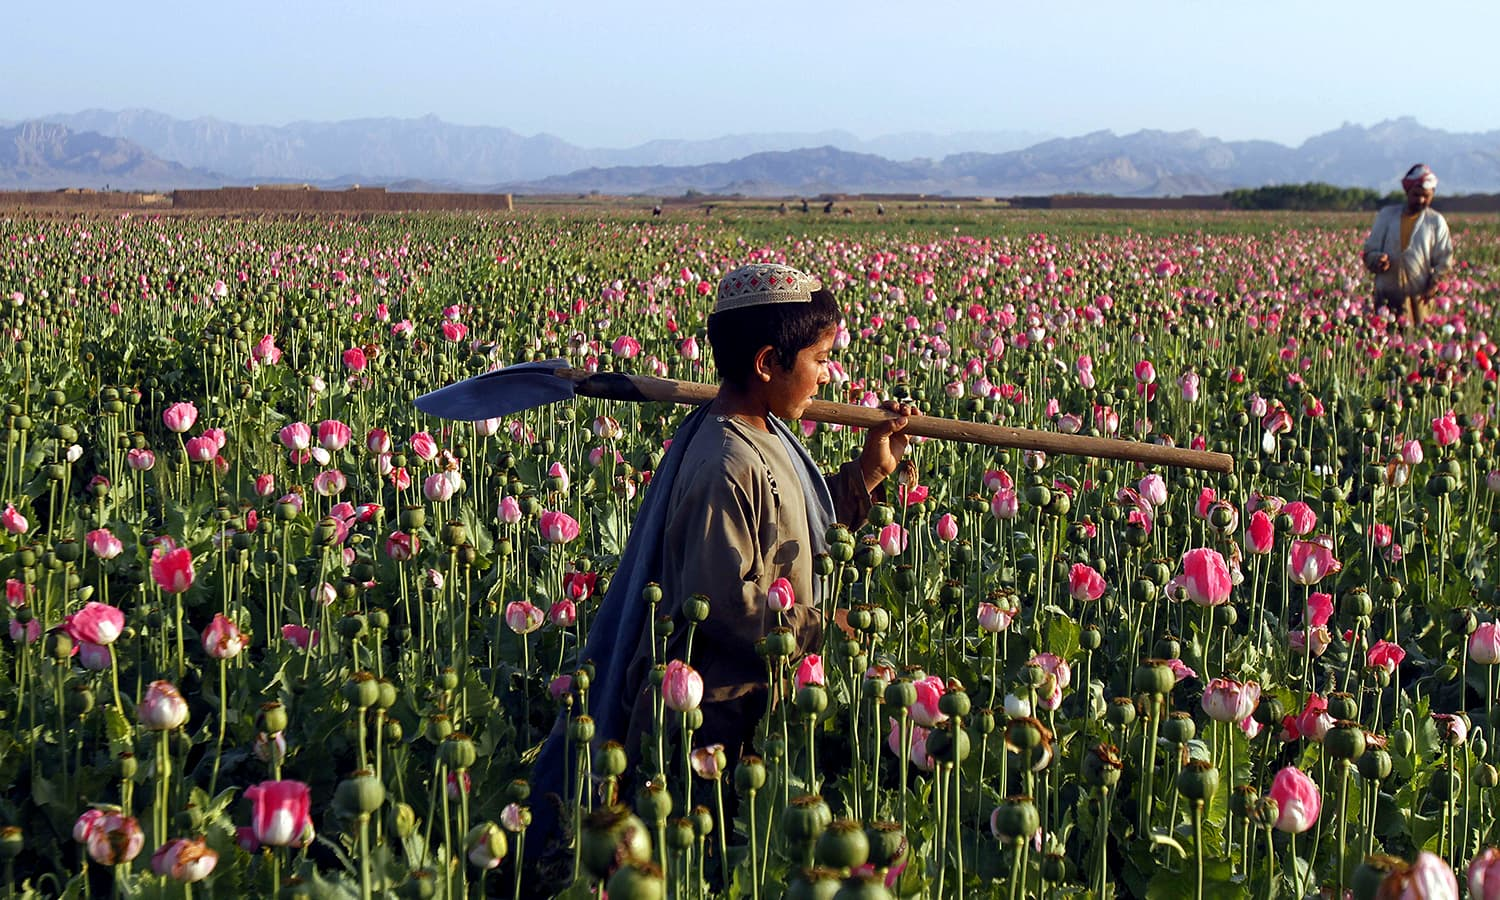 An Afghan child carries a shovel on his shoulder as he walks in a poppy field in Zari. ─ AP